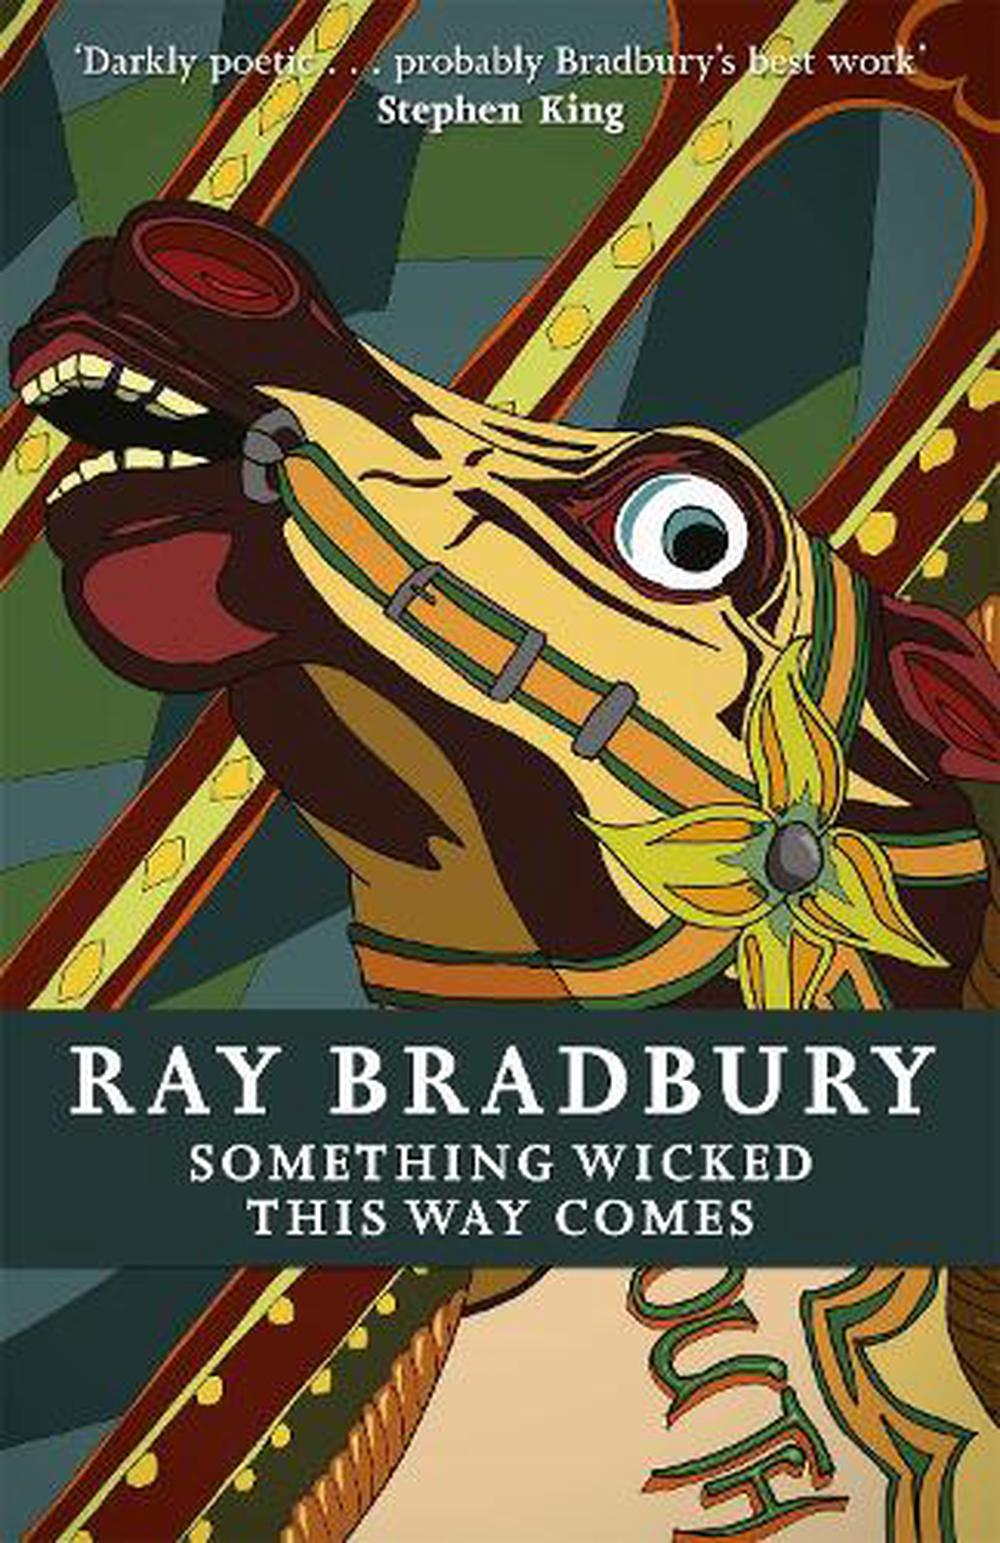 the constant battle between good and evil in something wicked this way comes by ray bradbury The climax of the story something wicked this way comes is the boys are nearly left to fight an ultimate battle of good and evil ray bradbury may.